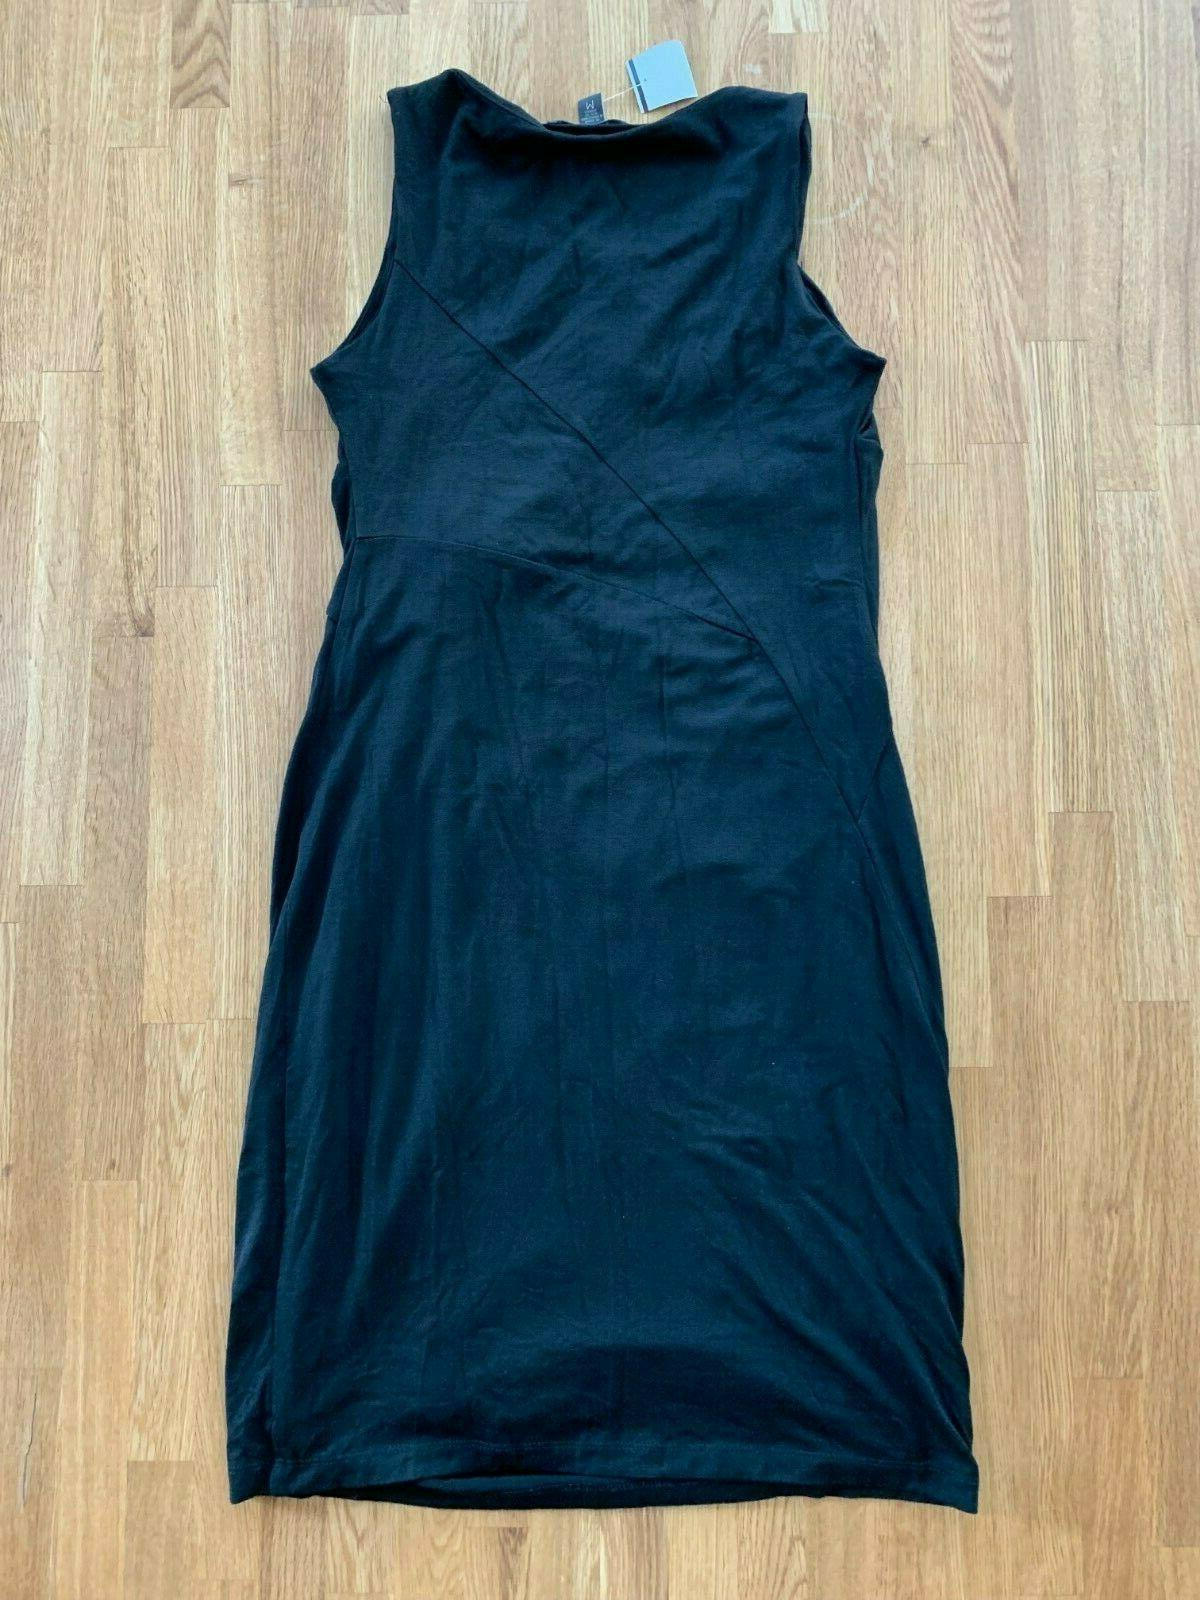 A Pea On The Pod Dreaming Sleeveless Black Size M